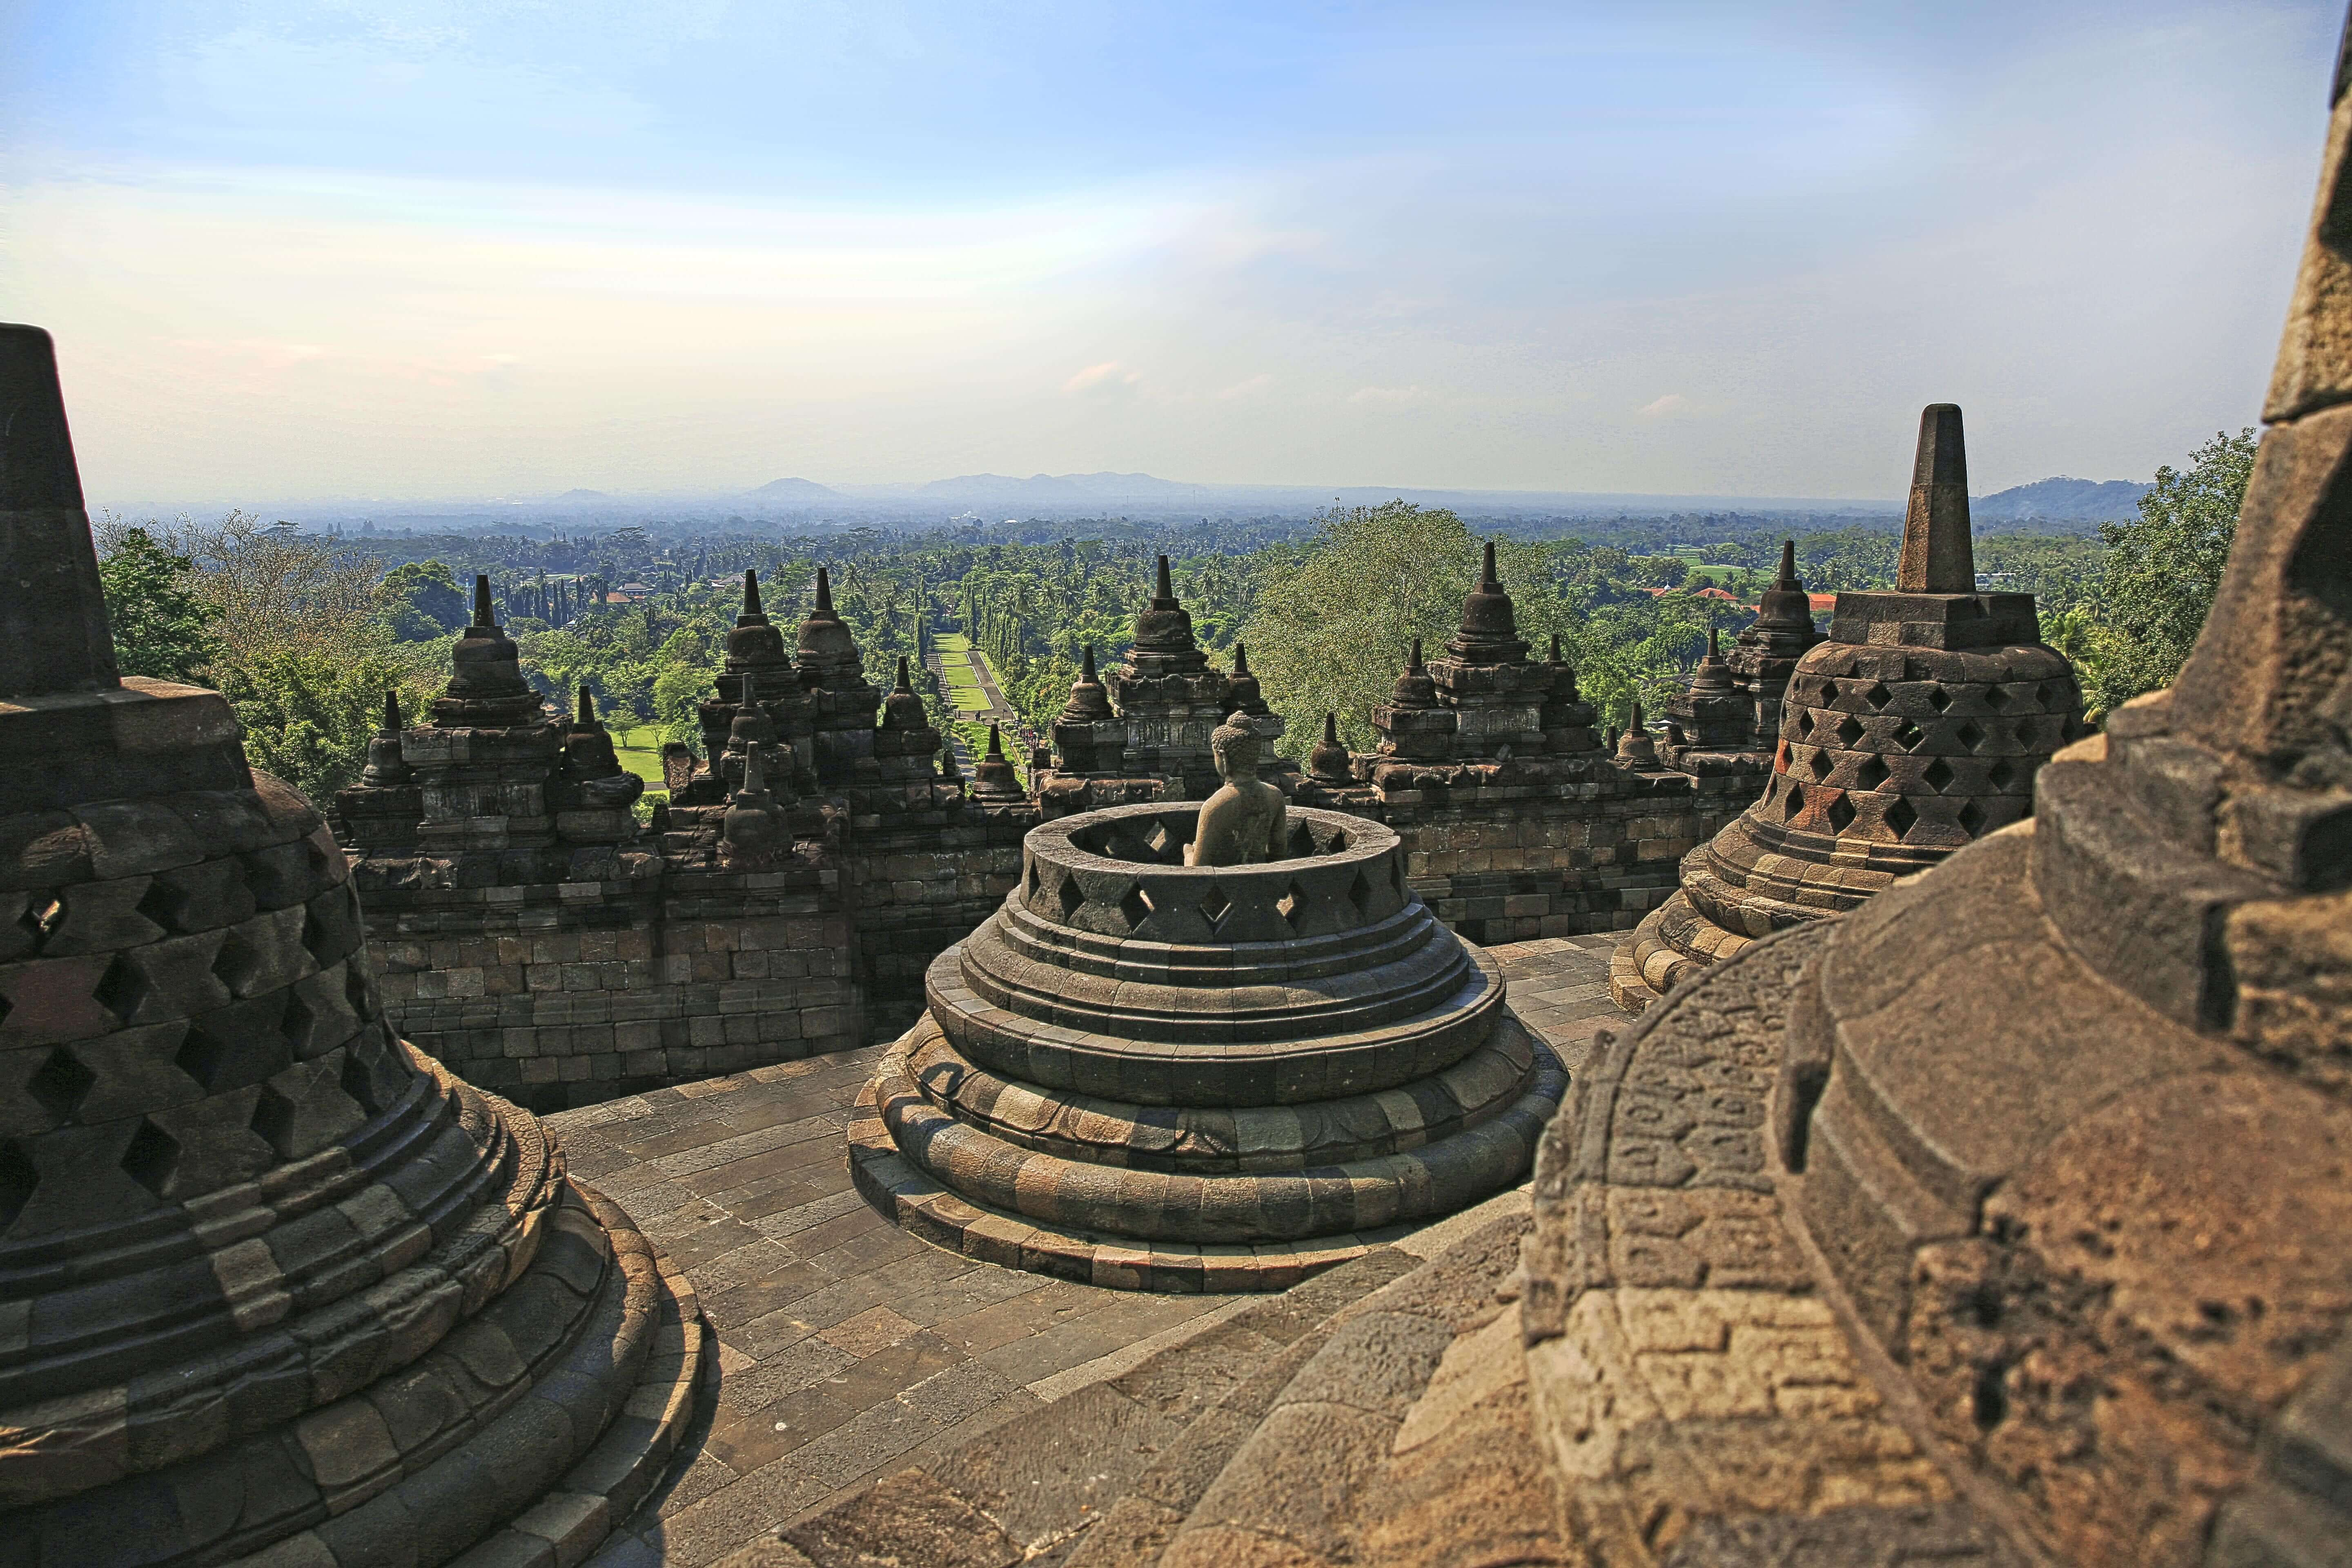 The Borobudur Temple, a famous Buddhist landmark in Central Java, Indonesia. Photo: Indonesian Ministry of Tourism